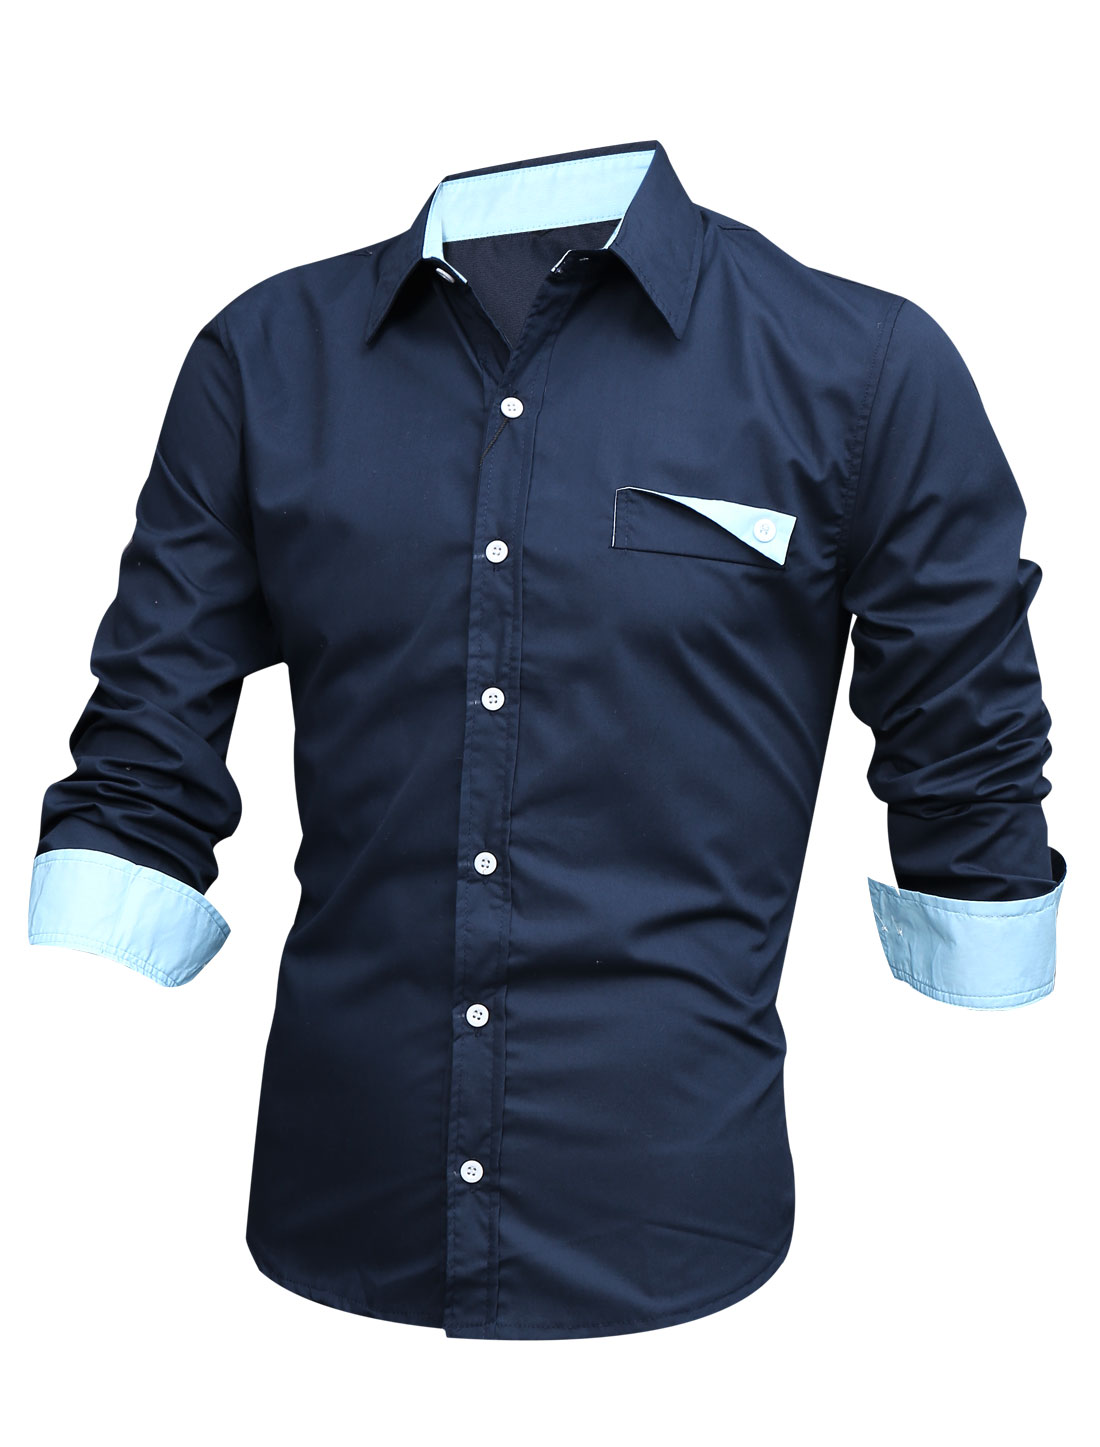 Men Single Breasted Front Button Cuffs Navy Blue Casual Shirt M